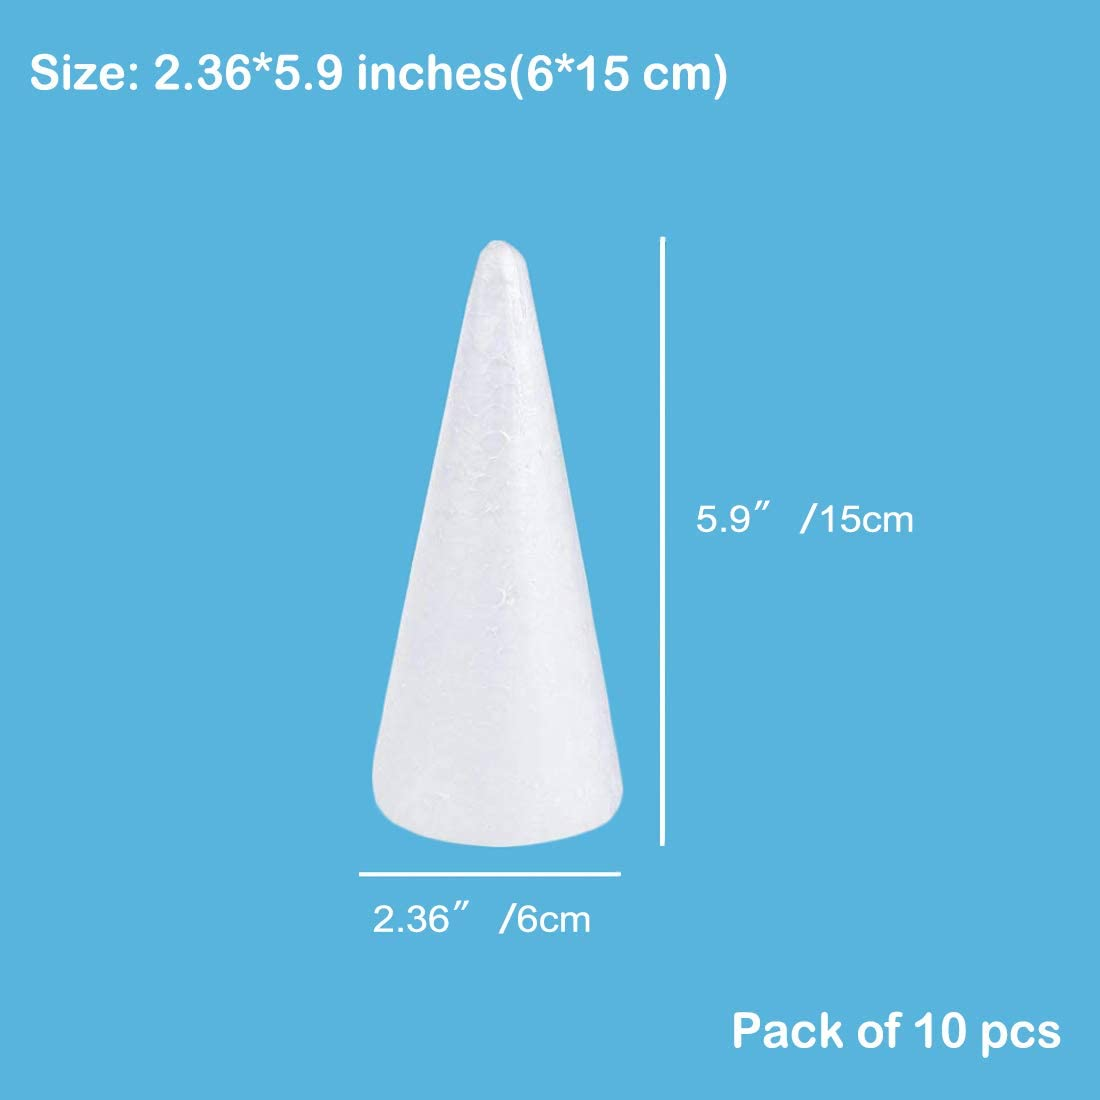 Christmas Tree White Polystyrene Foam 12- Pack Cone Shaped Foam for DIY Home Craft Project Table Centerpiece ACTENLY Craft Foam Cone 3 x 7.3 x 3 Inches